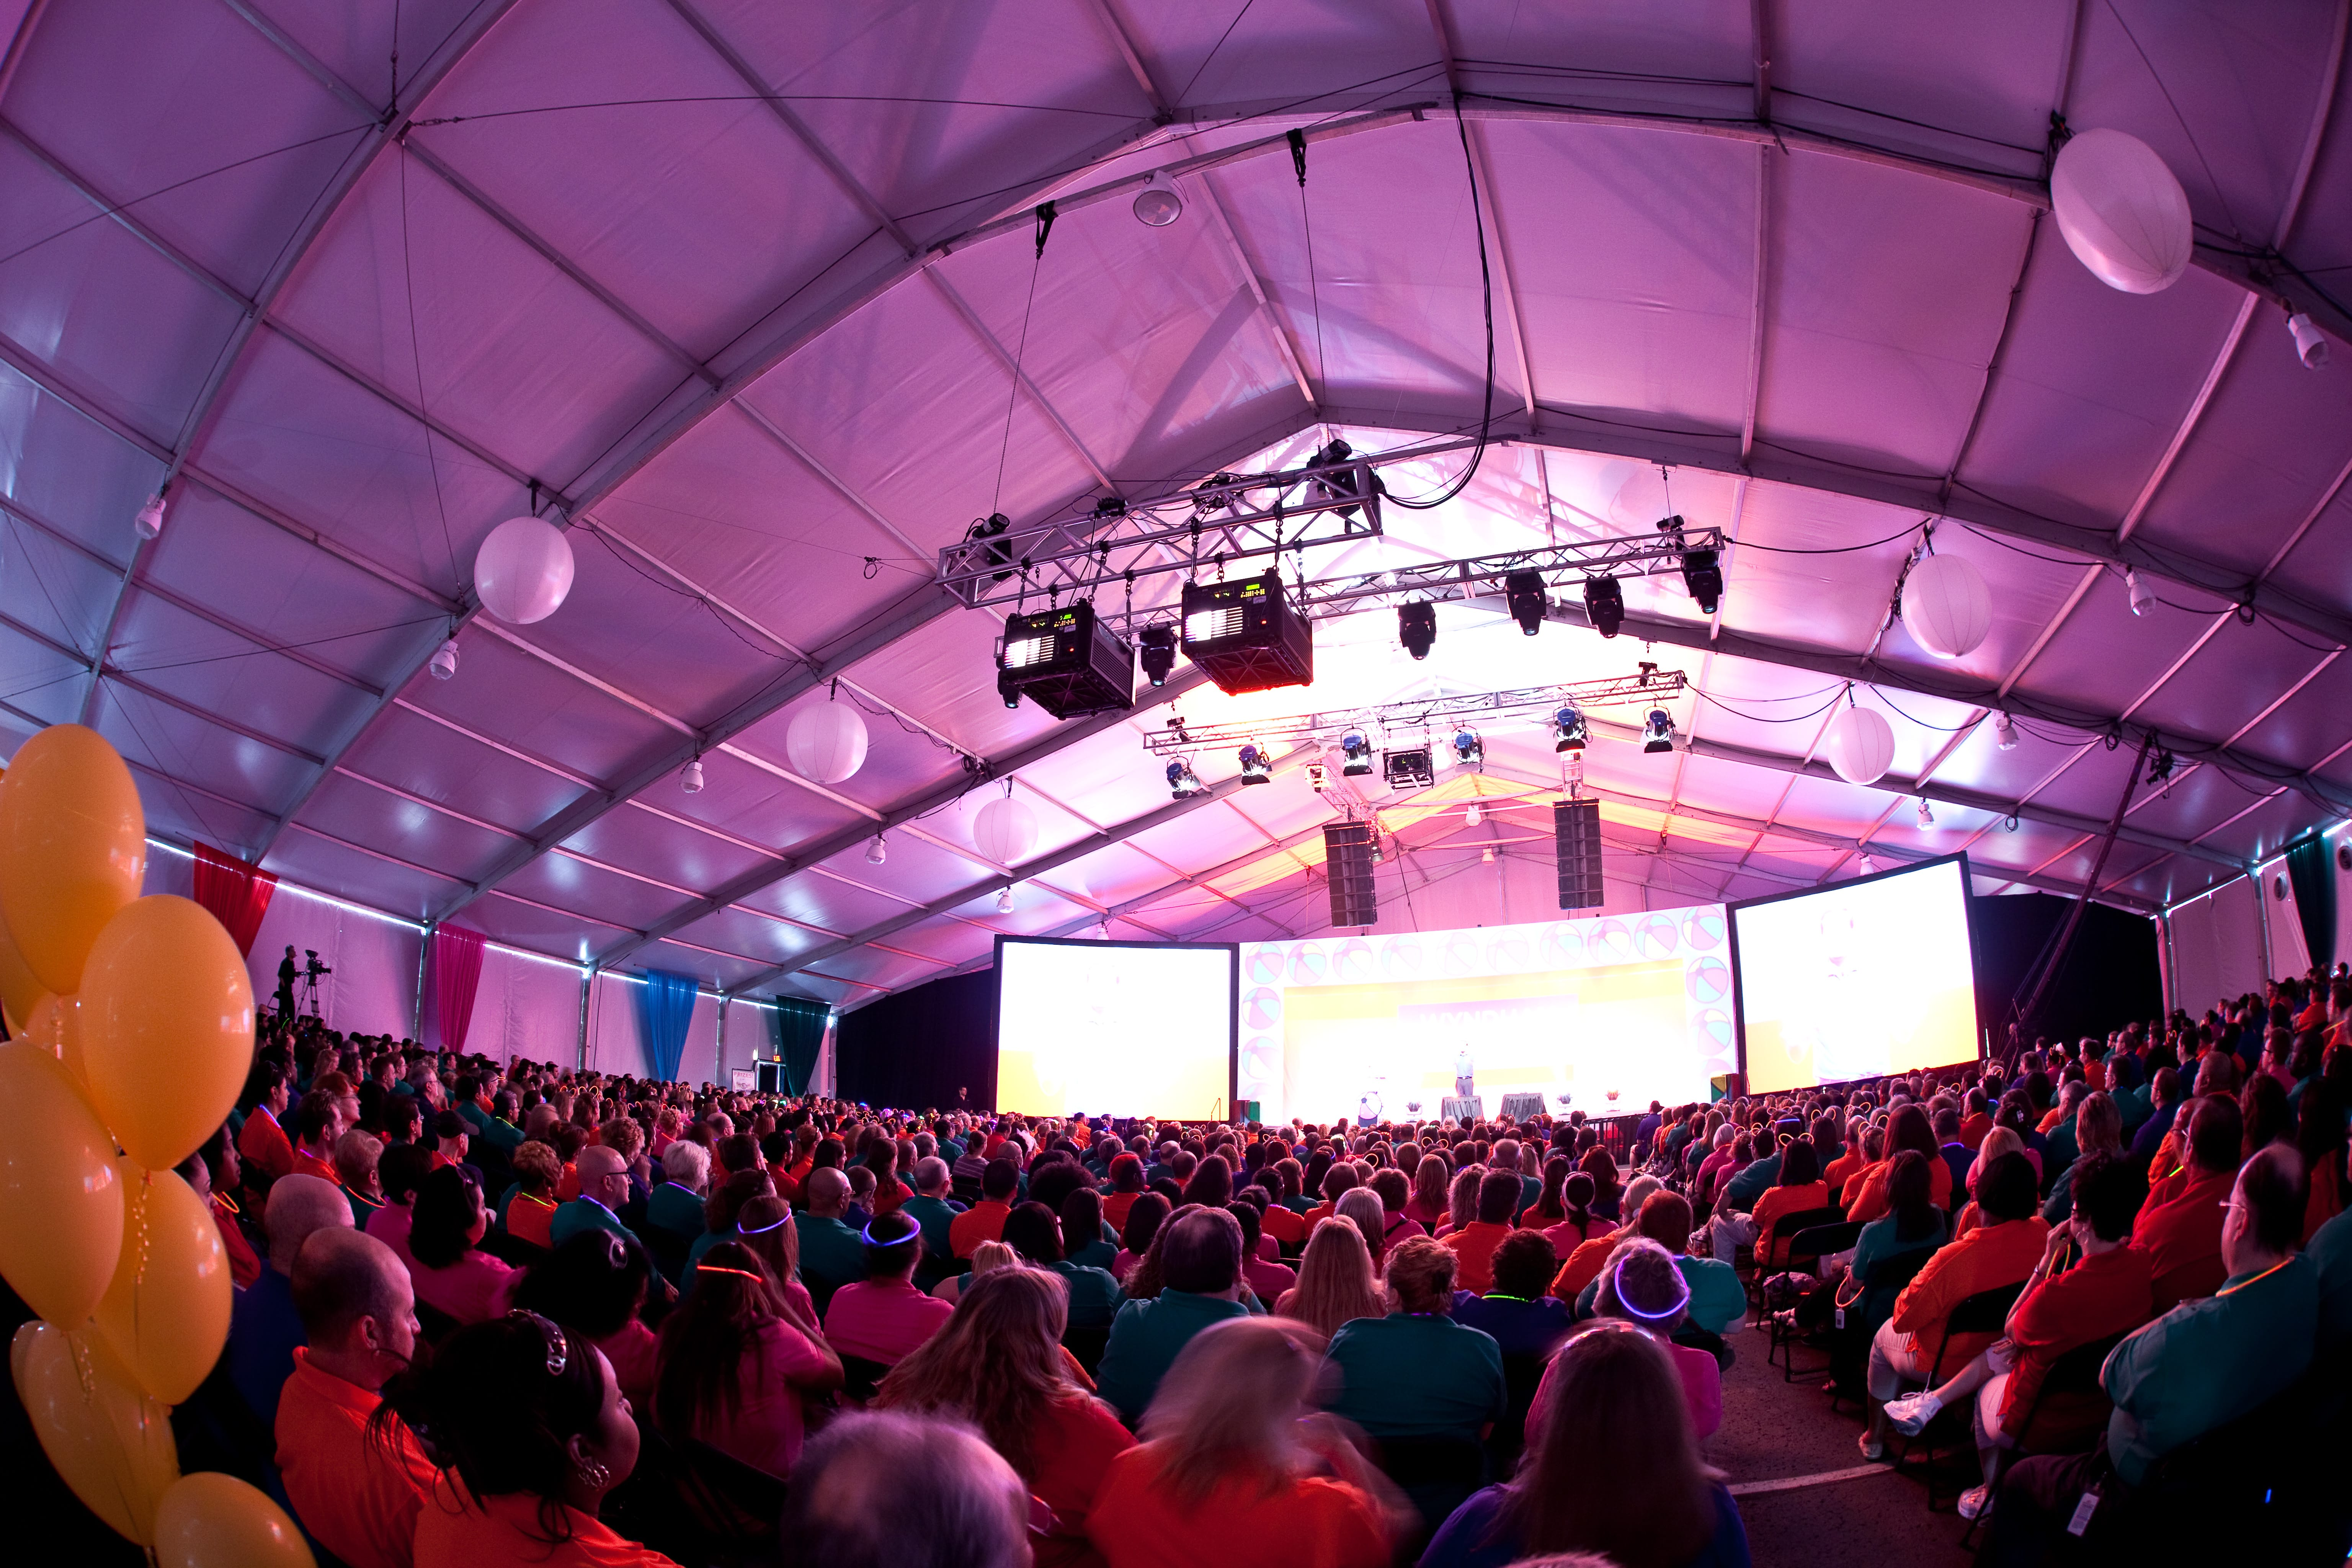 Clearspan Tent | American Pavilion